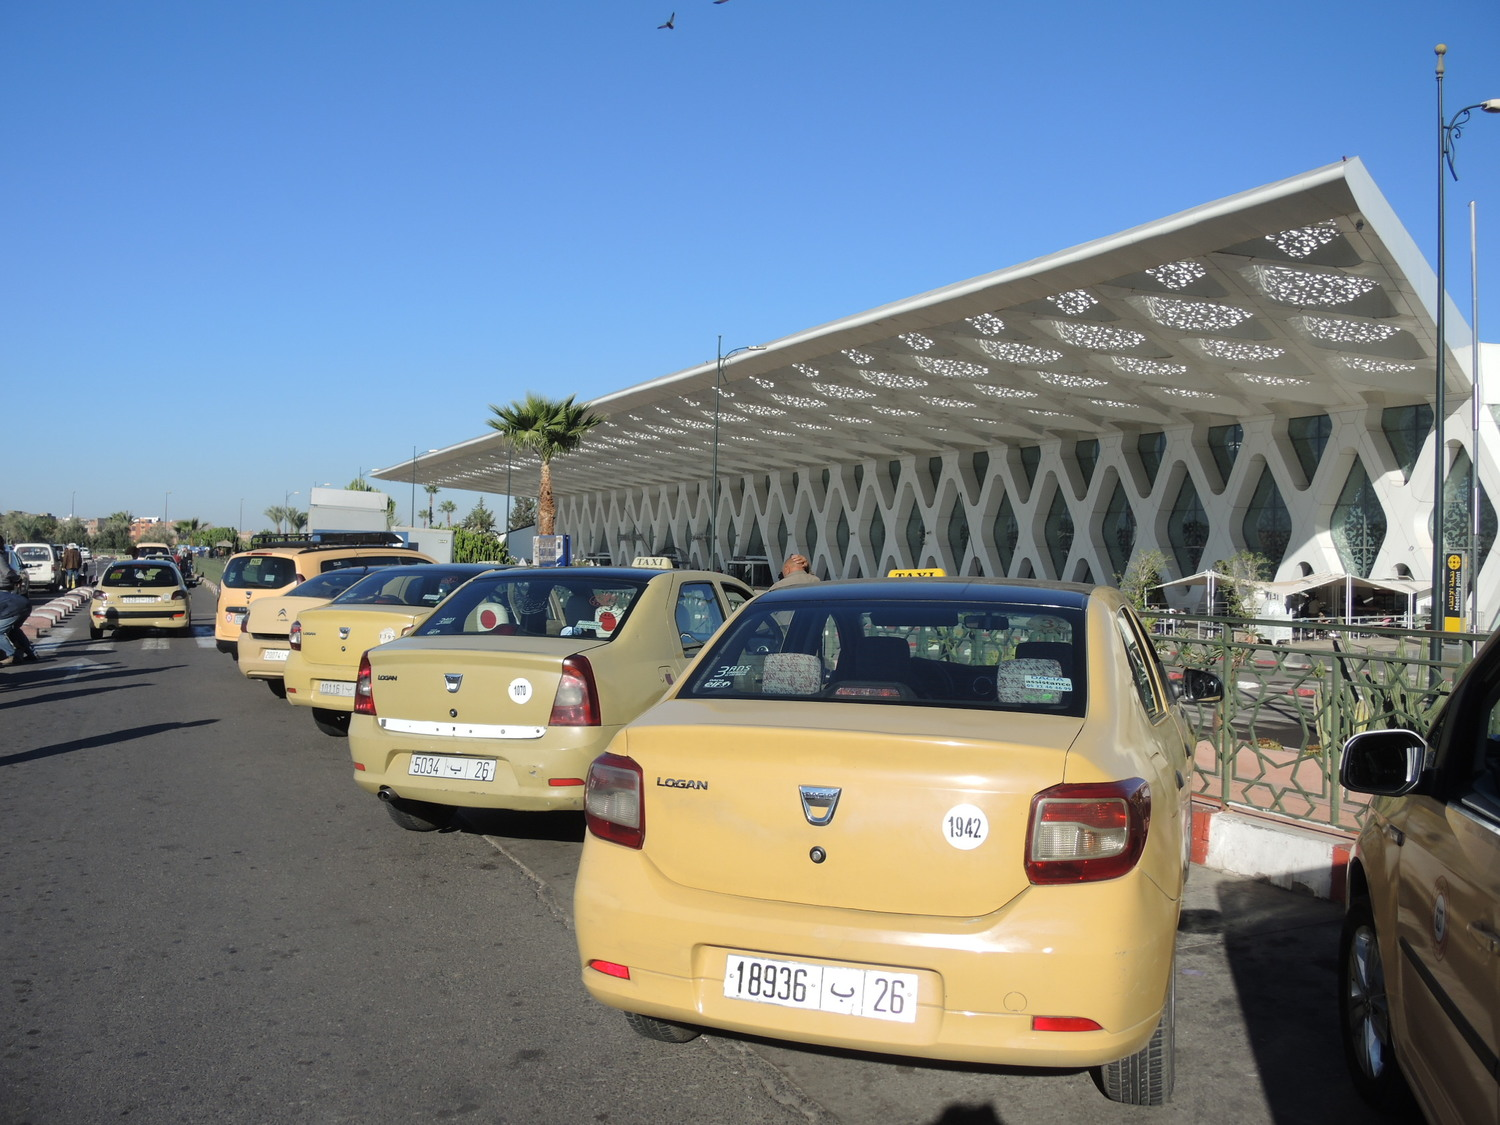 Taxis in front of Menara airport